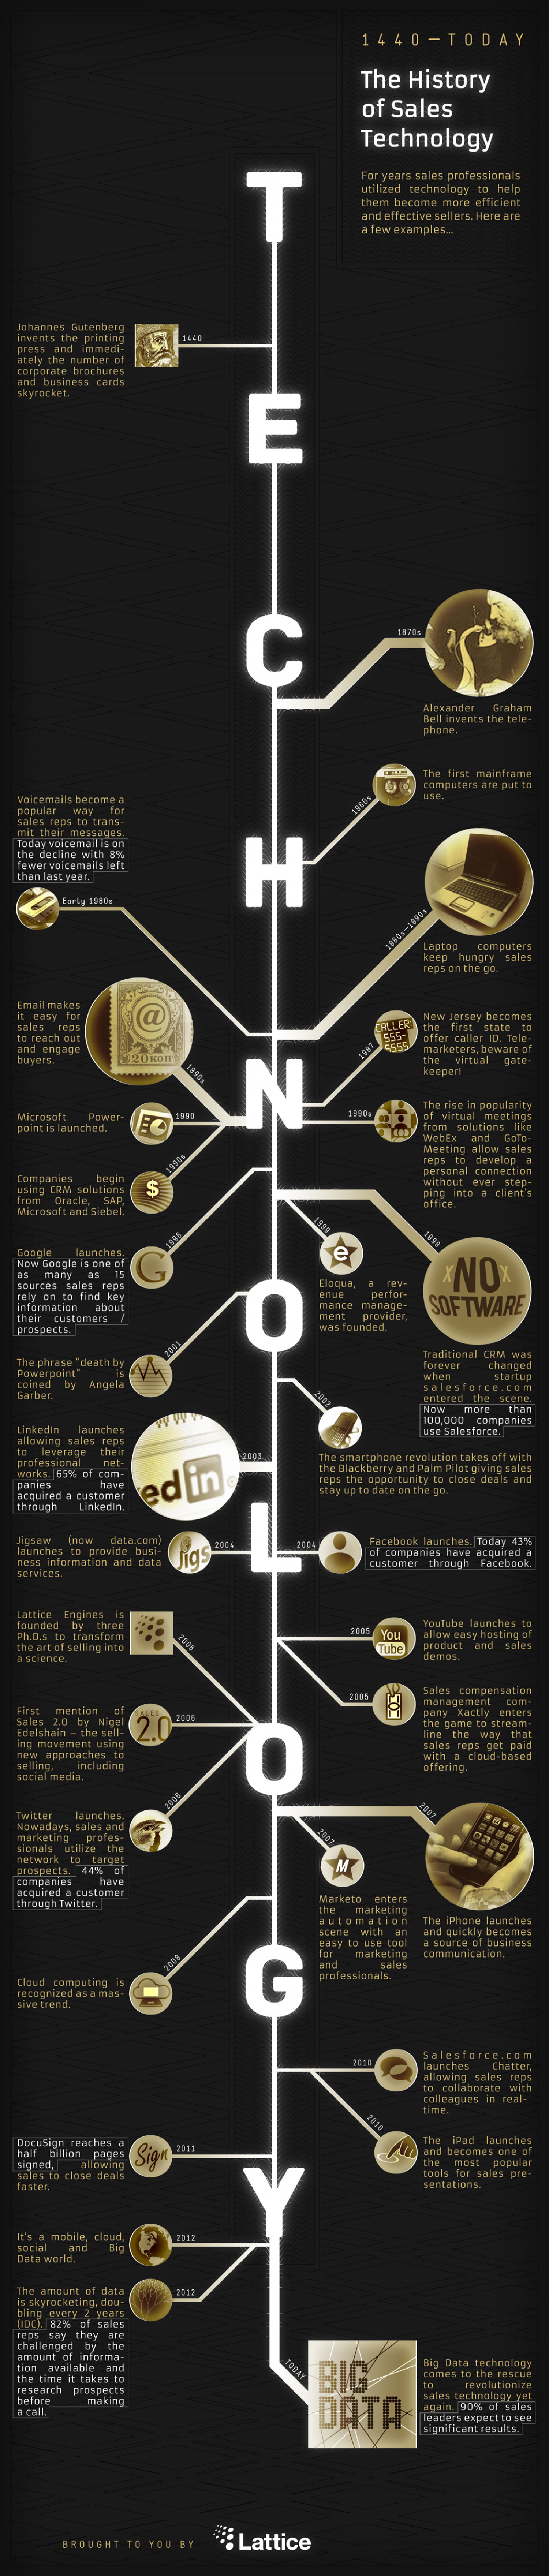 The History of Sales Technology Infographic